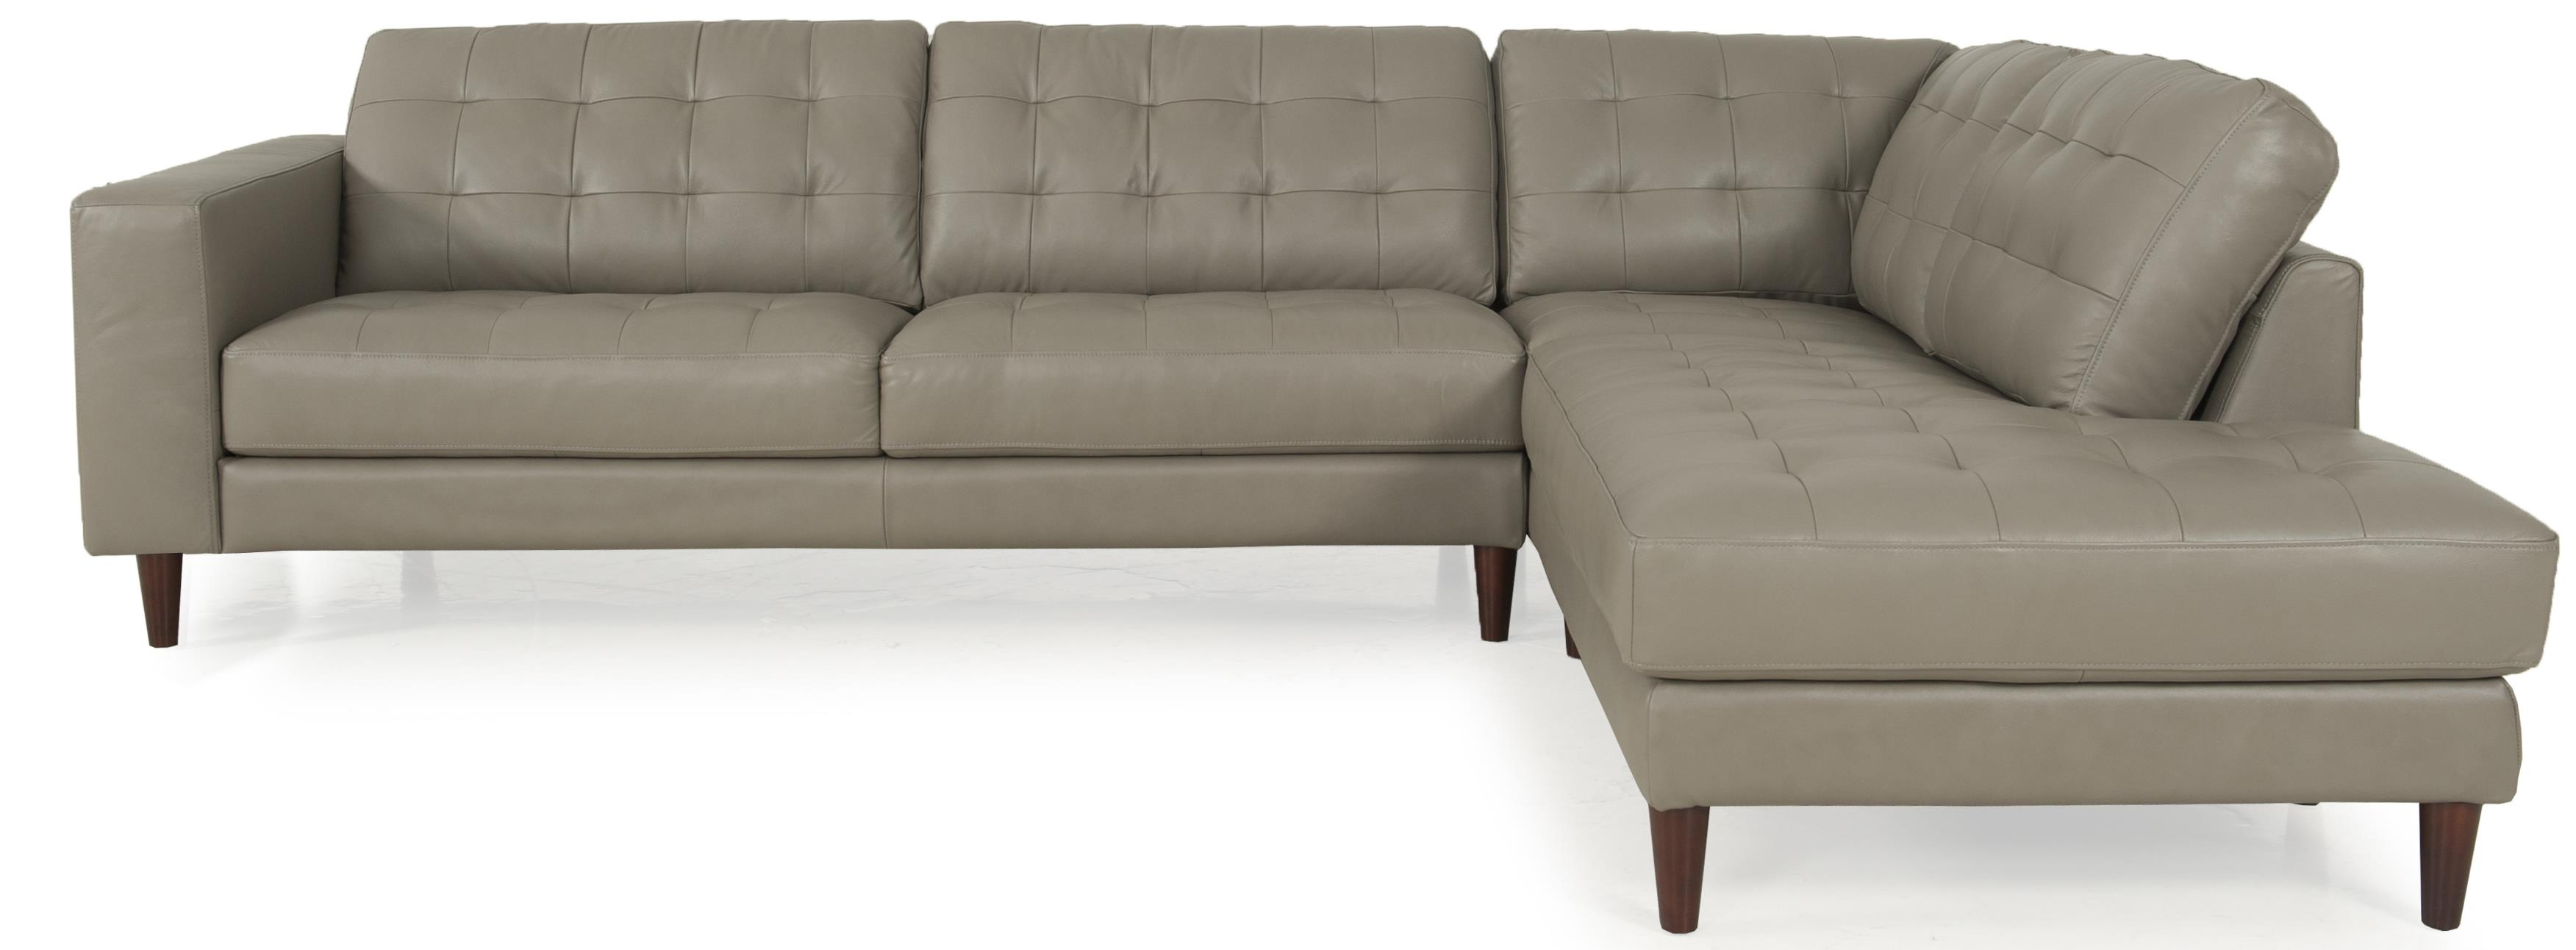 Futura Leather Myla Sectional HomeWorld Furniture Sofa Sectional